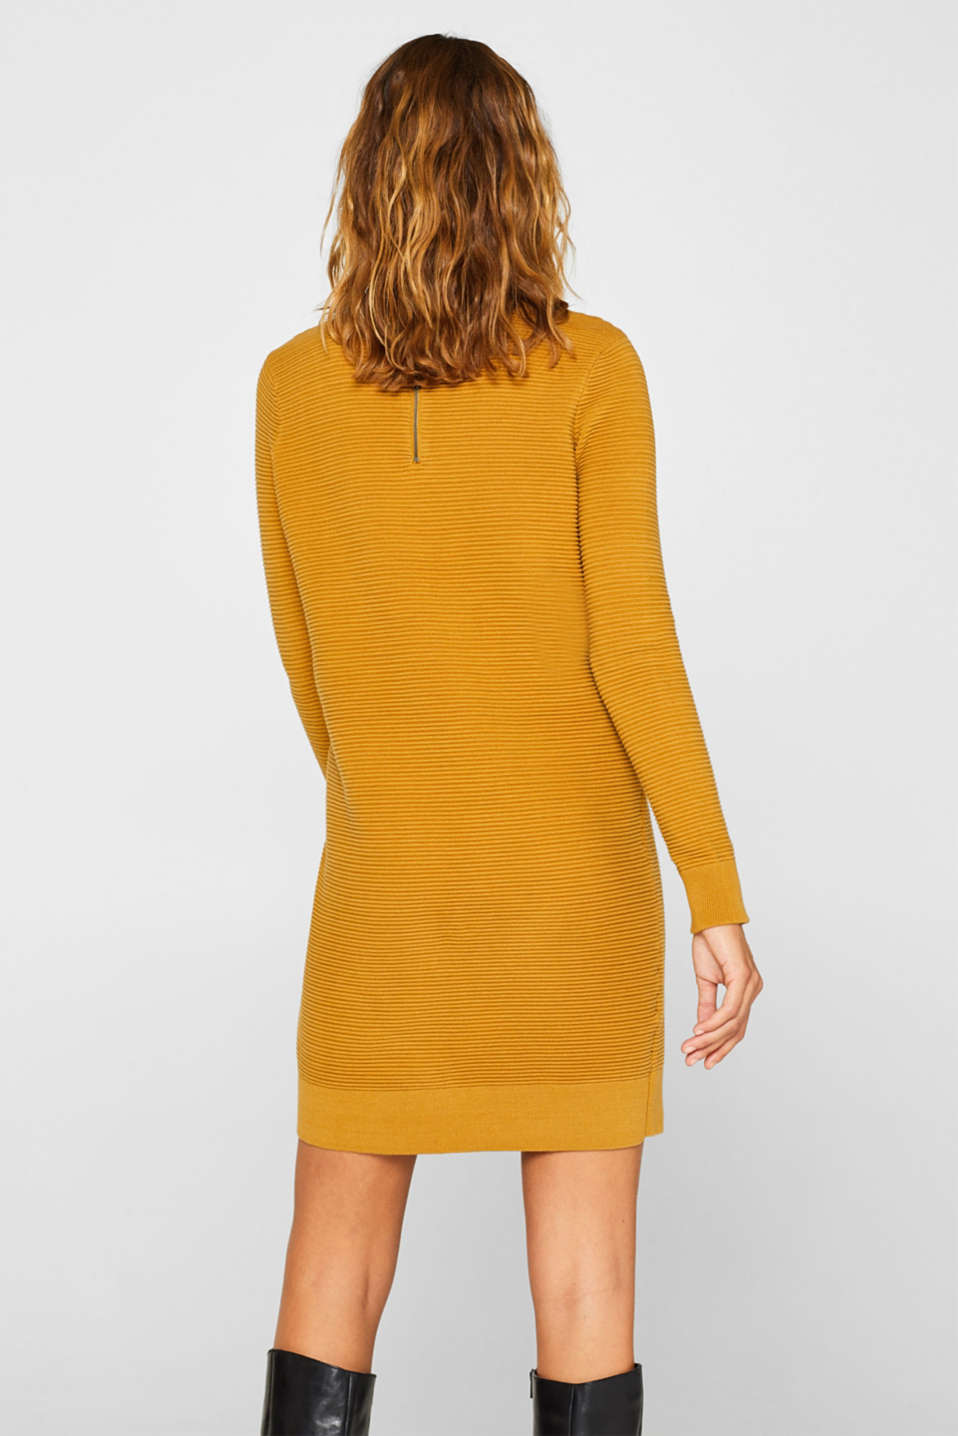 Knit dress with a ribbed texture, AMBER YELLOW, detail image number 2